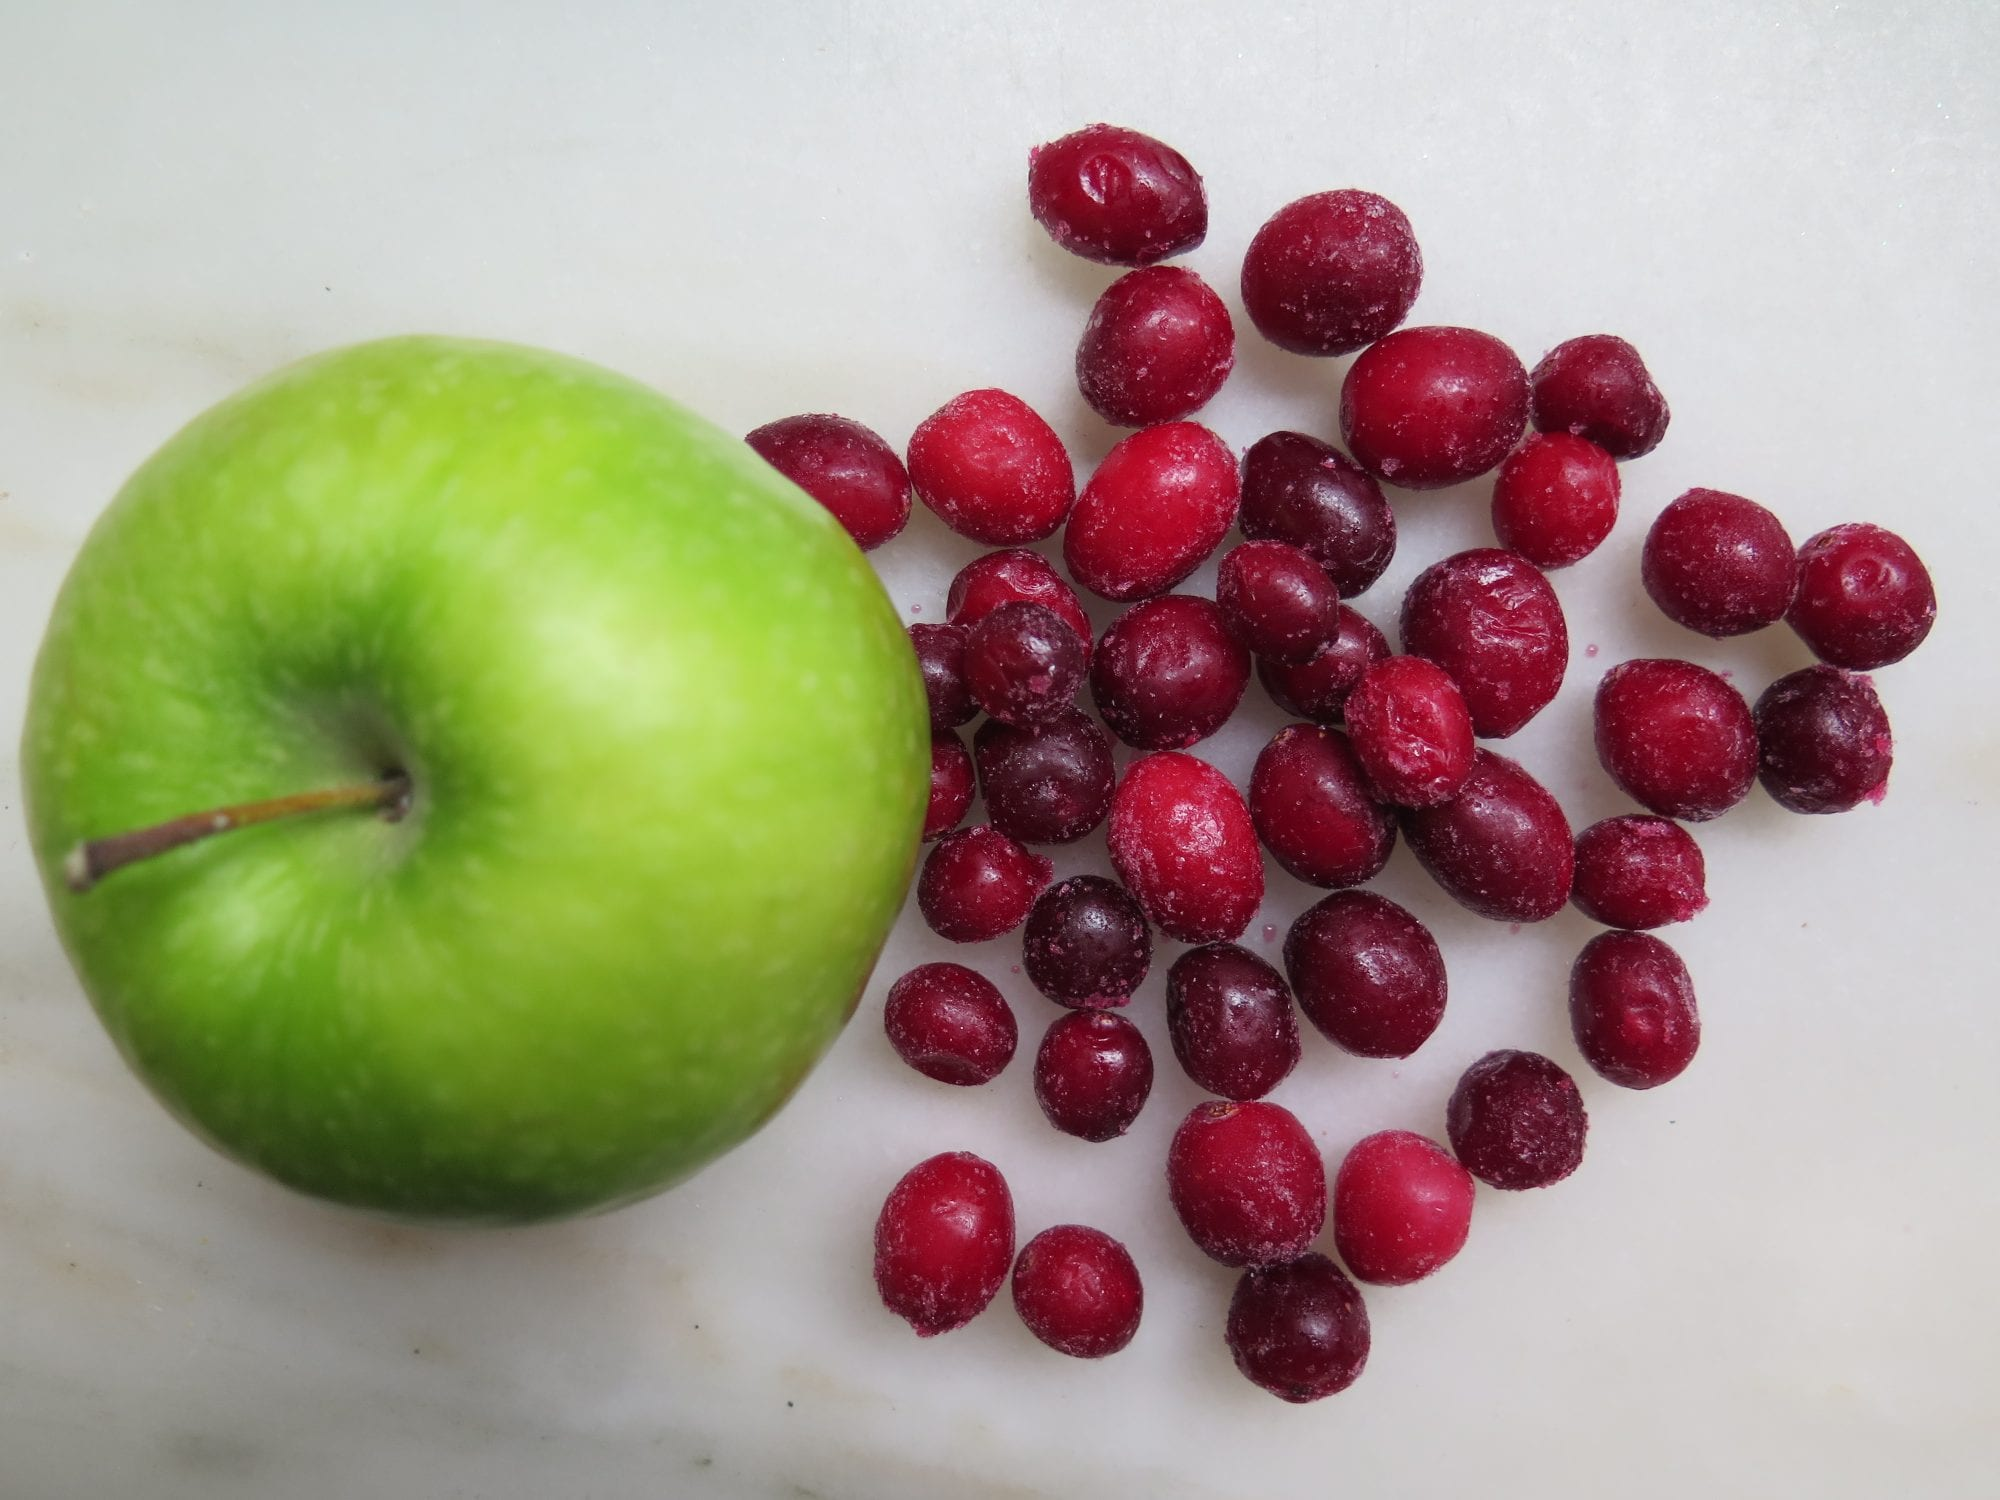 Green Apple and Cranberries | Jessie Sheehan Bakes